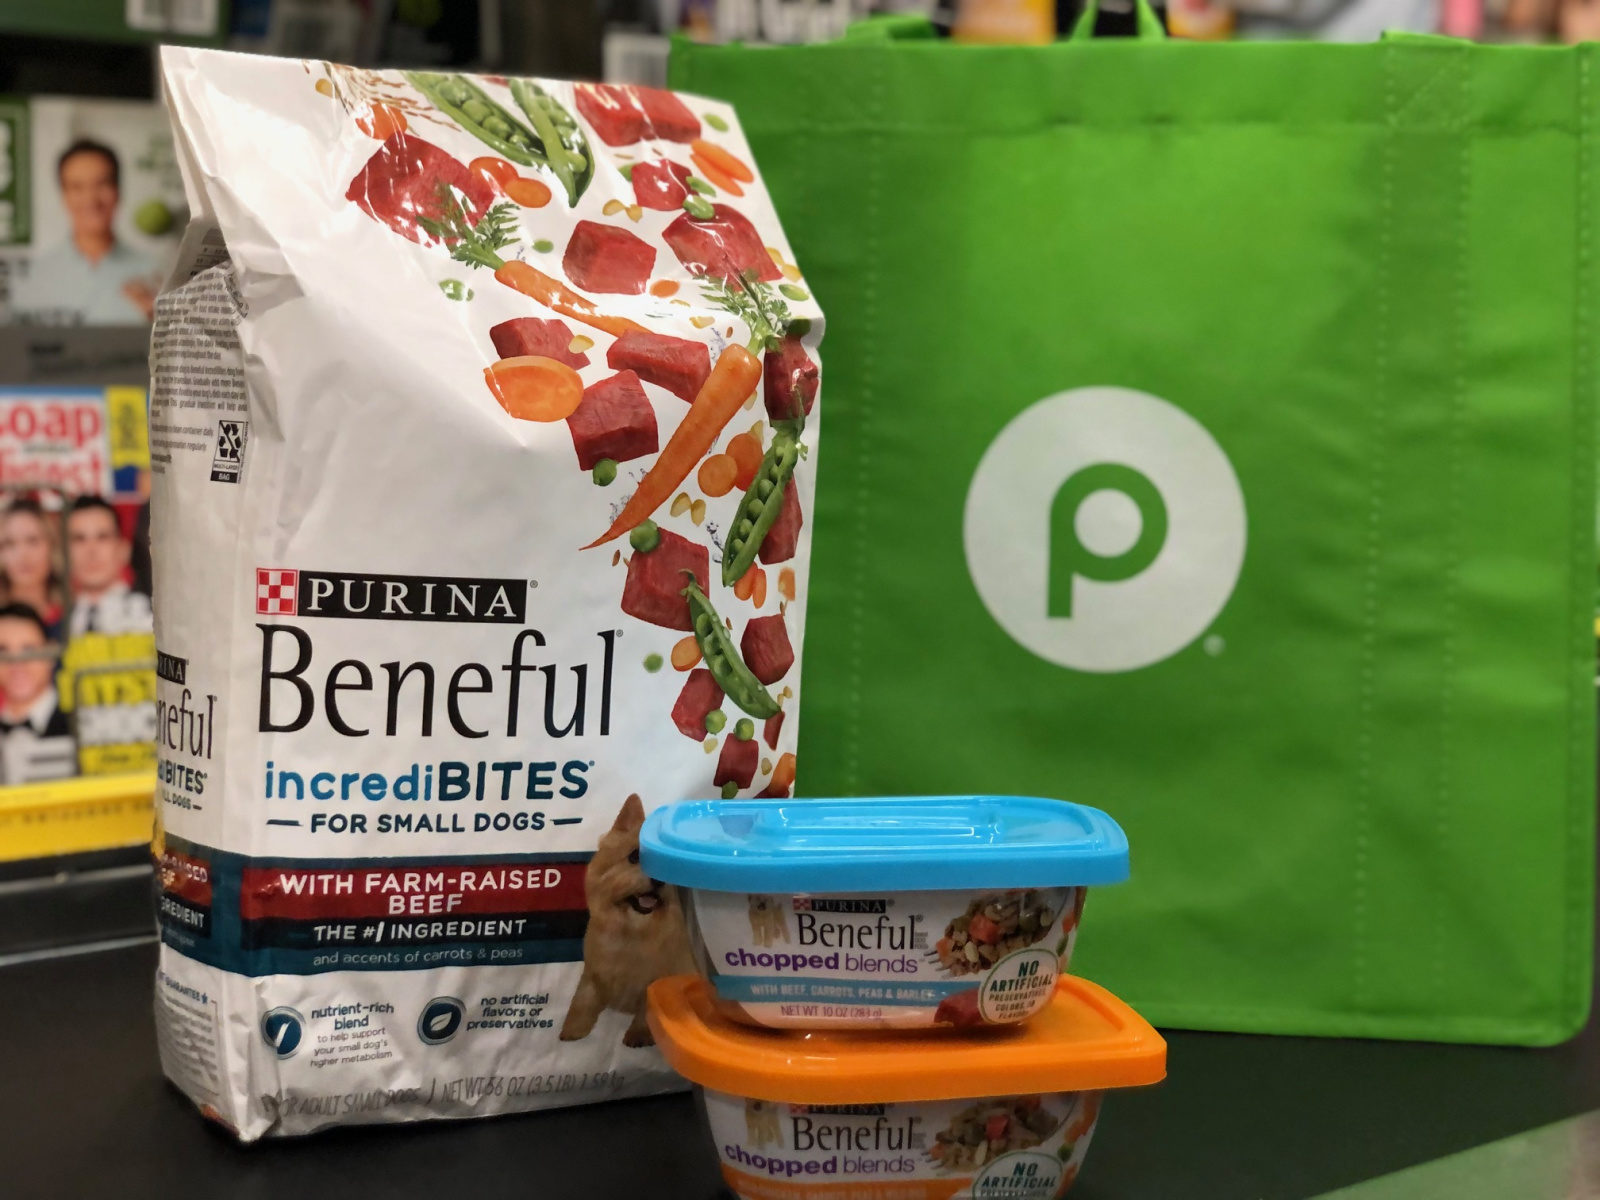 New Purina Beneful Coupons Mean Nice Deals At Publix on I Heart Publix 3